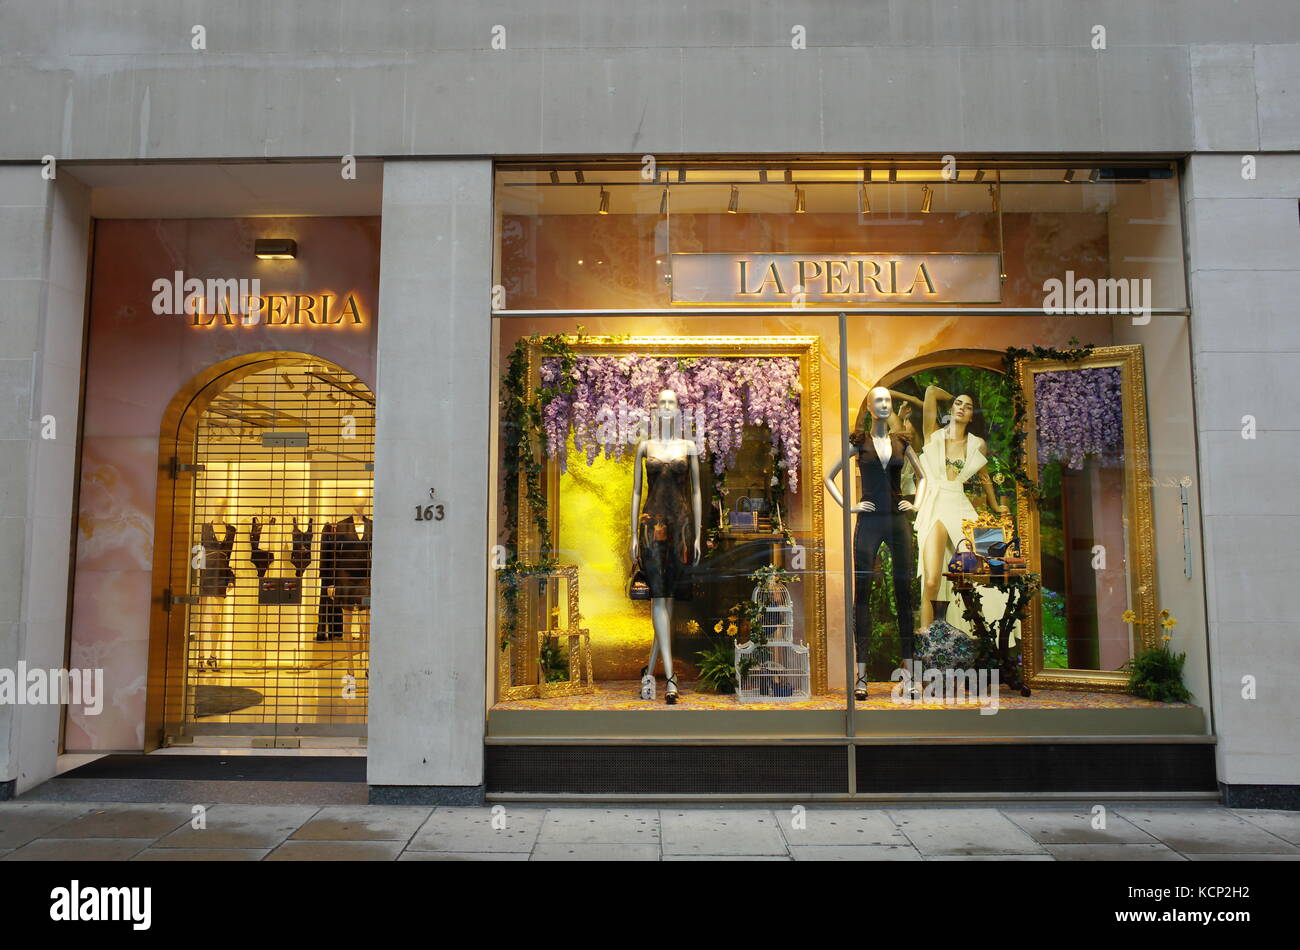 La Perla Shop Stock Photos & La Perla Shop Stock Images - Alamy